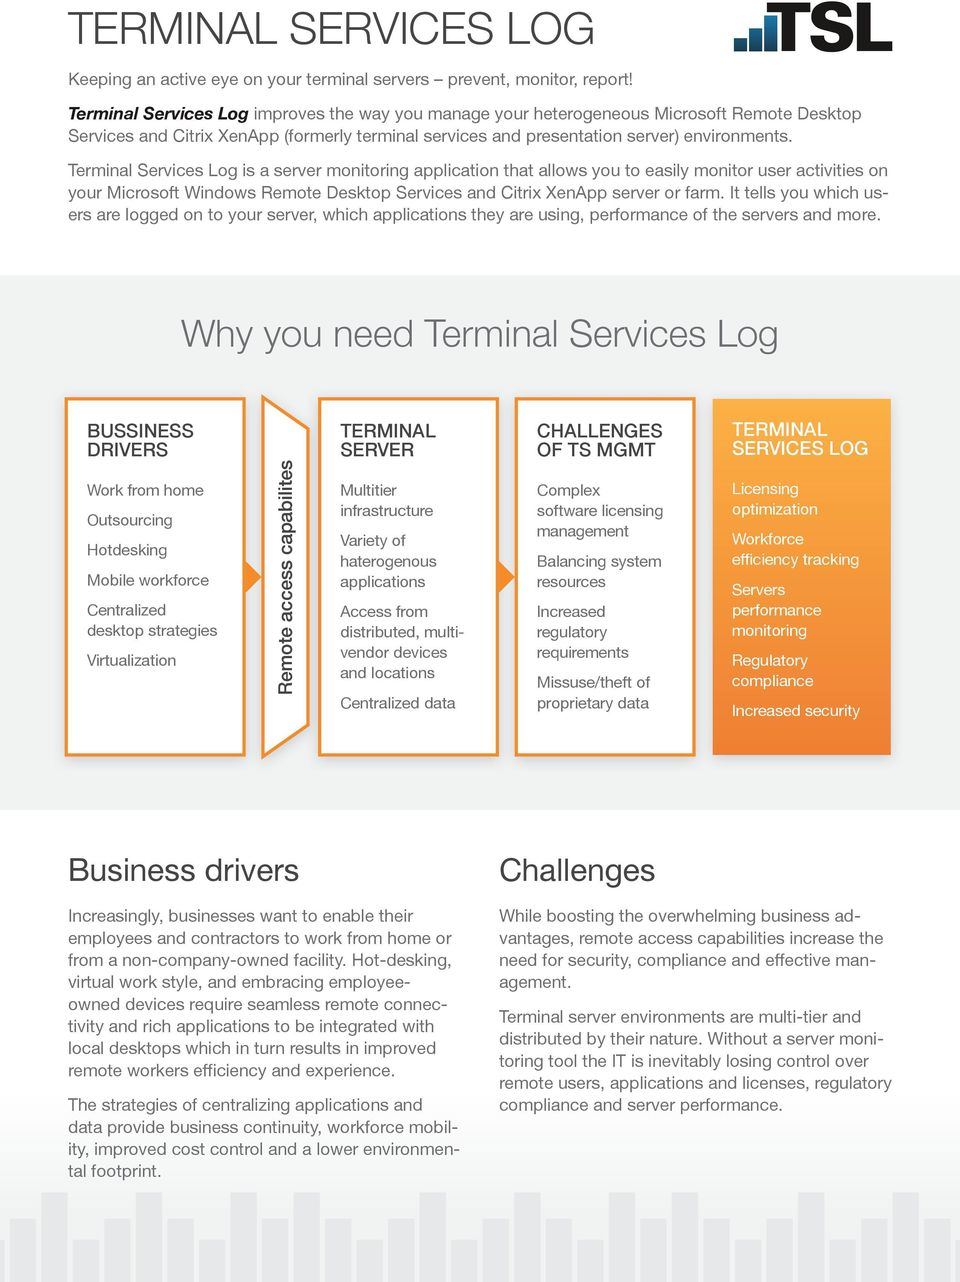 Terminal Services Log is a server monitoring application that allows you to easily monitor user activities on your Microsoft Windows Remote Desktop Services and Citrix XenApp server or farm.